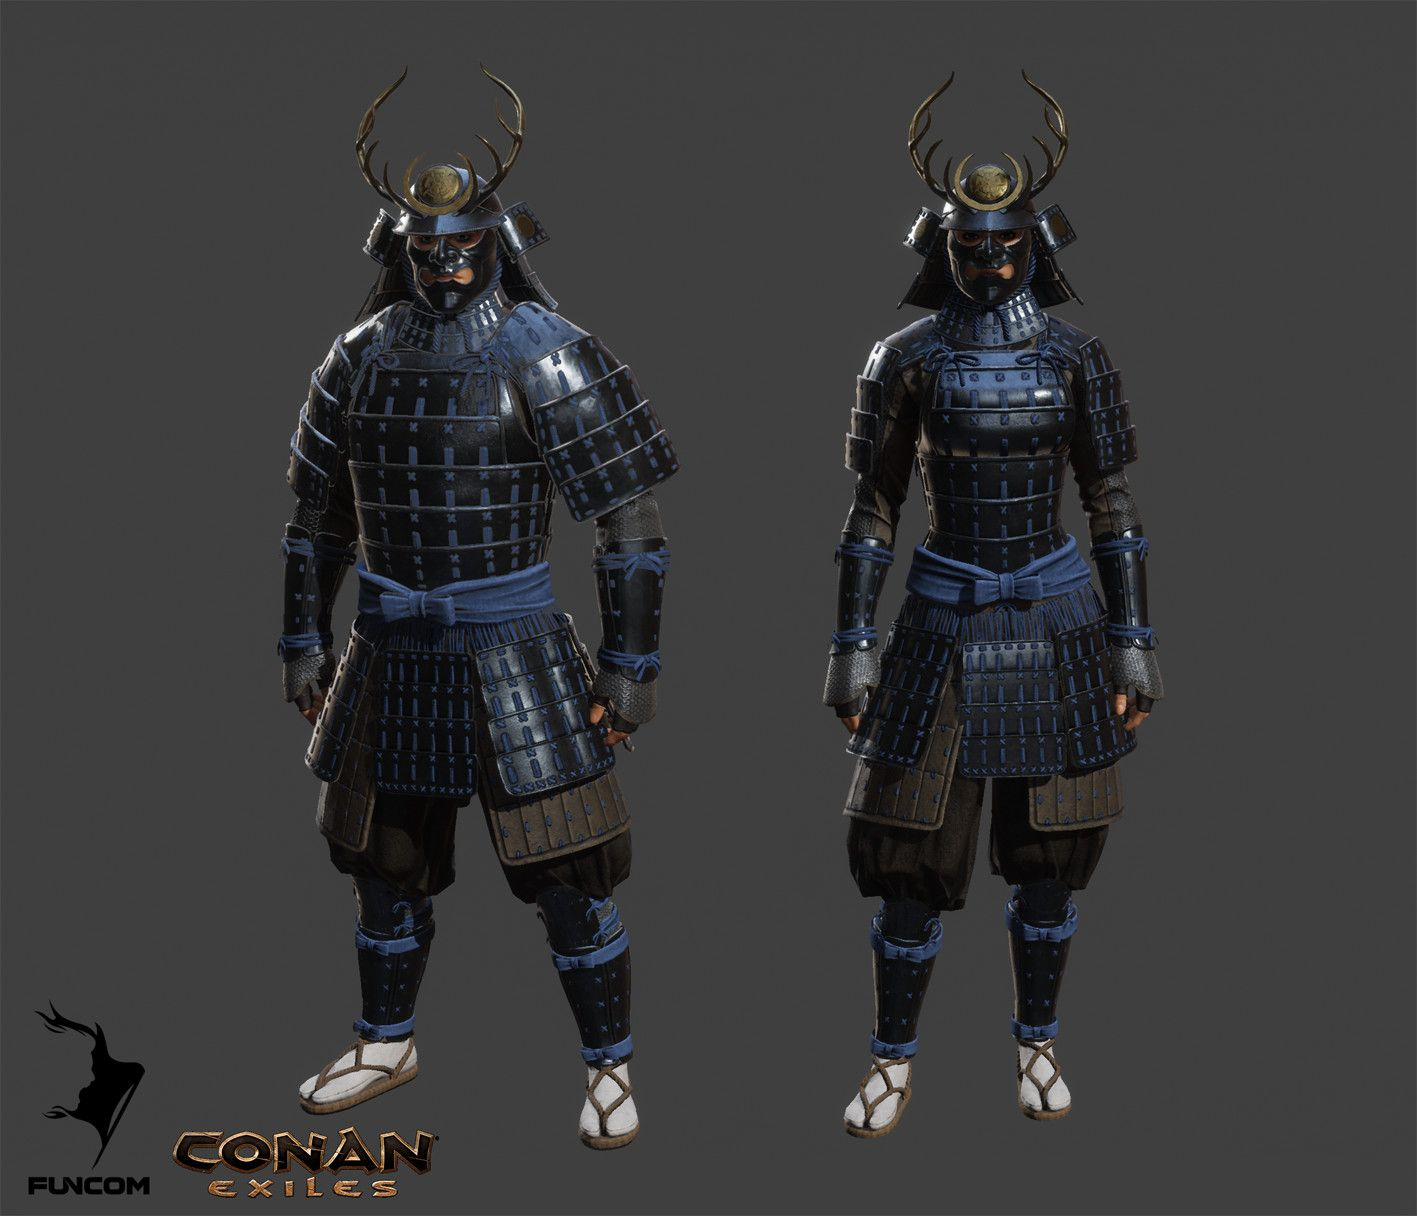 24 Conan Exiles Ideas Conan Exiles Conan Conan The Barbarian Howard's conan the barbarian universe. 24 conan exiles ideas conan exiles